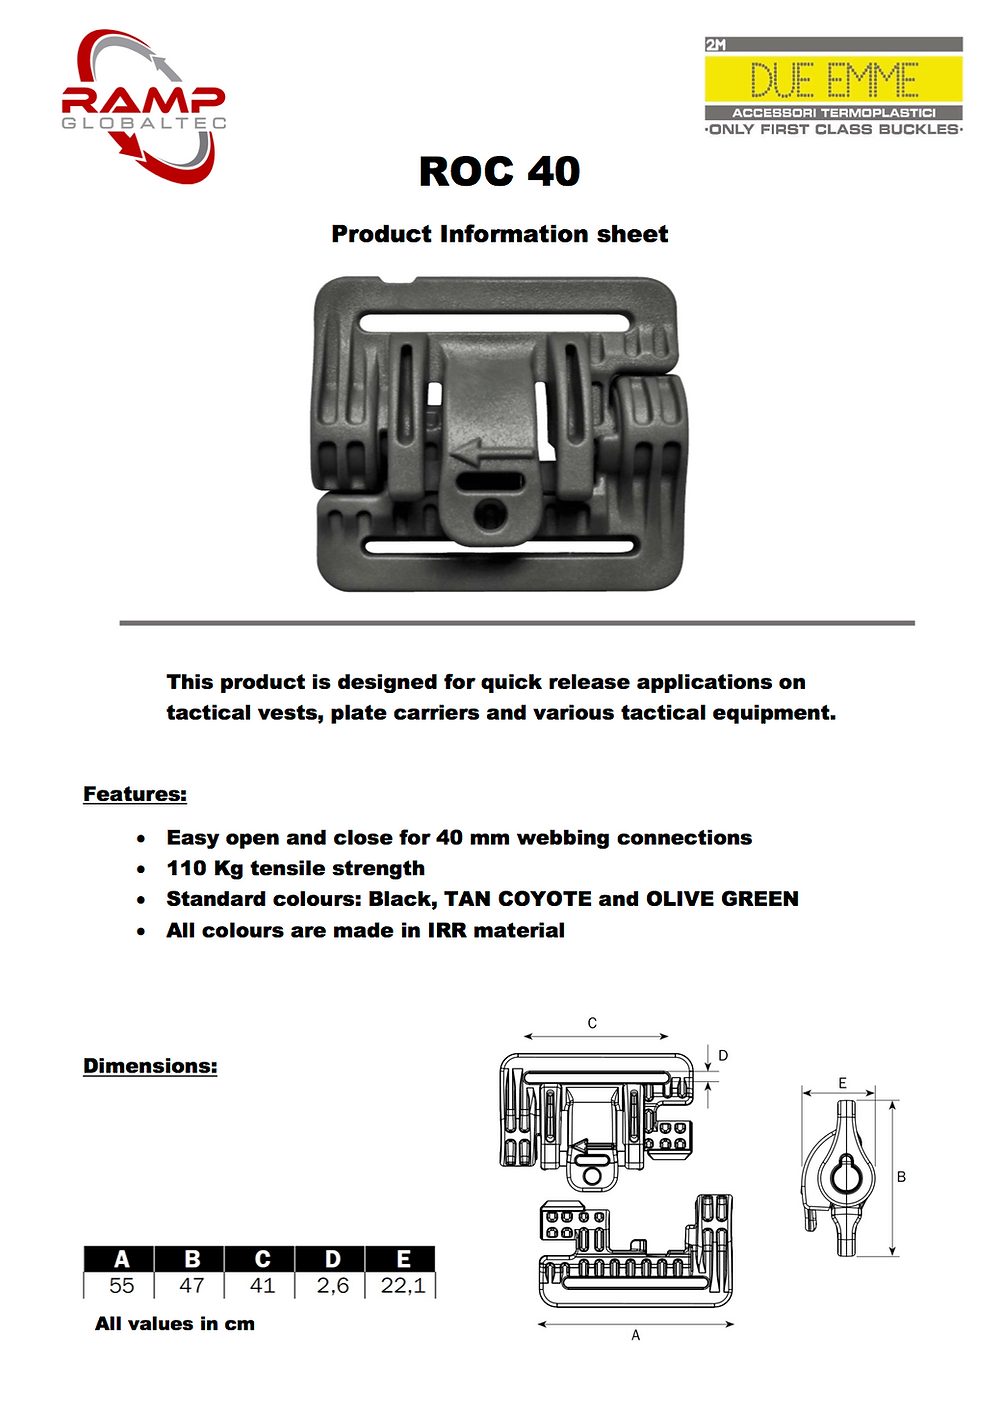 Download ROC 40 product information sheet